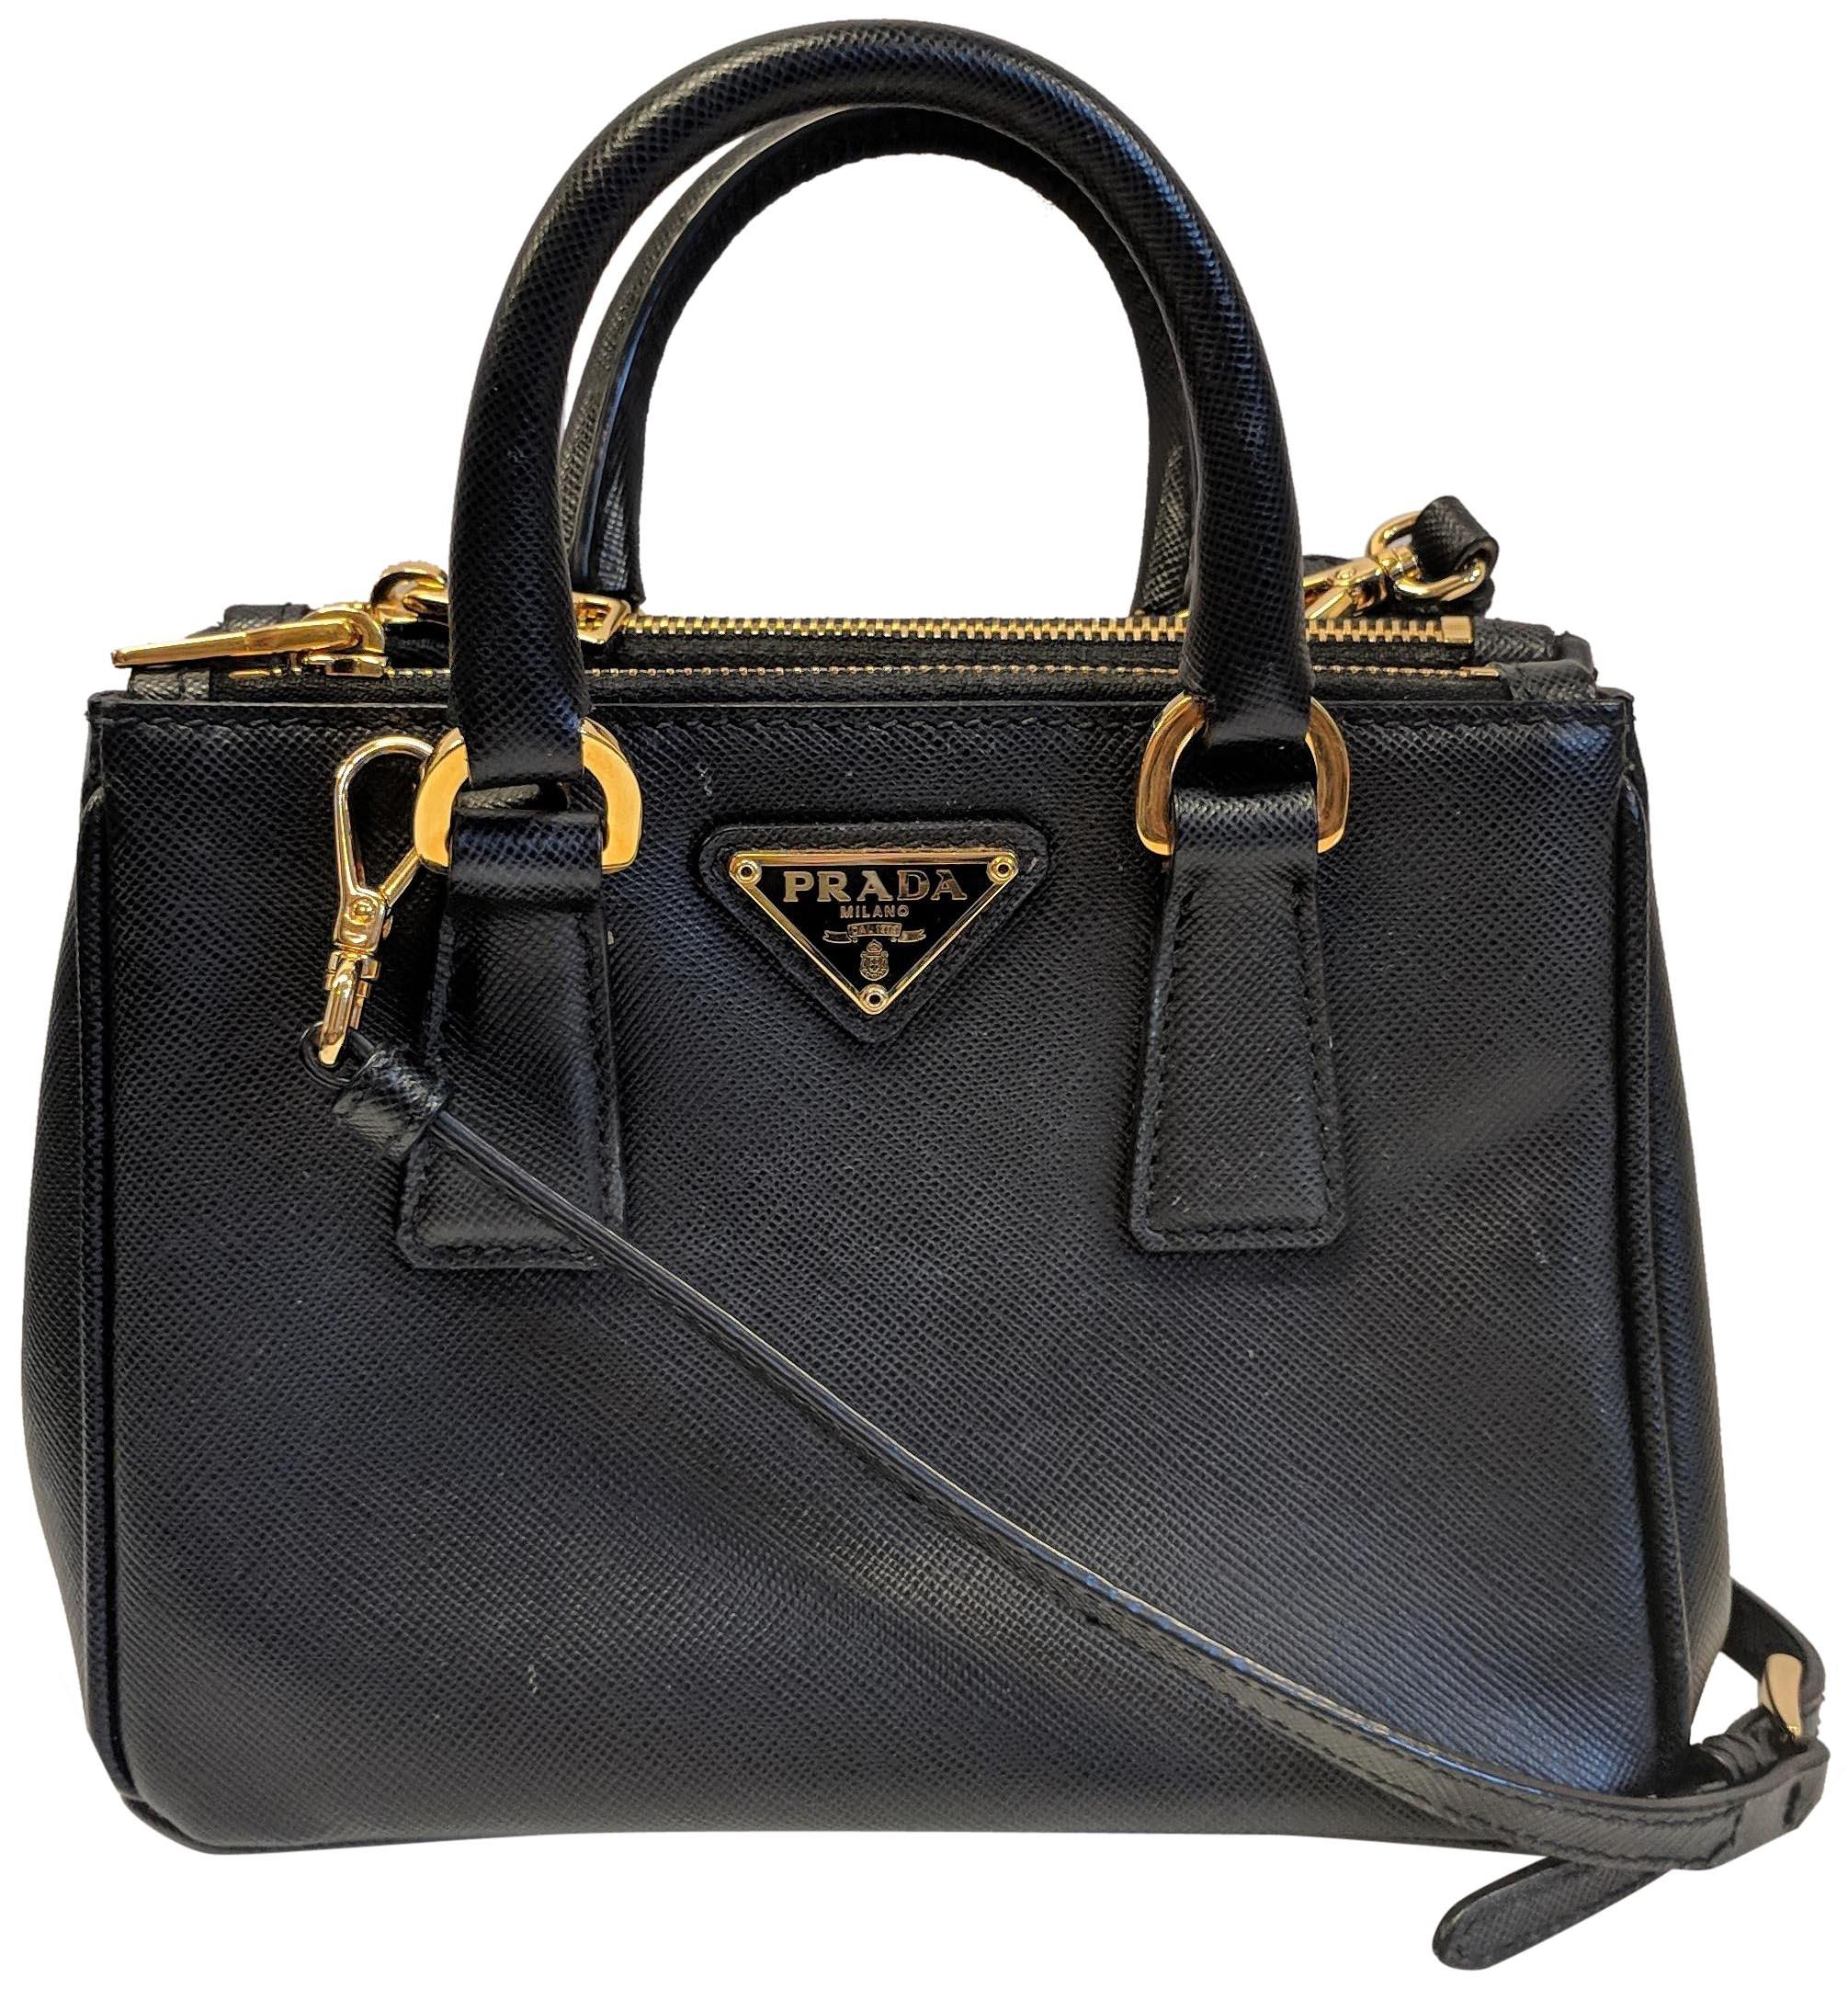 99f32d29f2c1d0 ... coupon code for prada saffiano double zip nano mini cross body bag  8c0e8 334ee